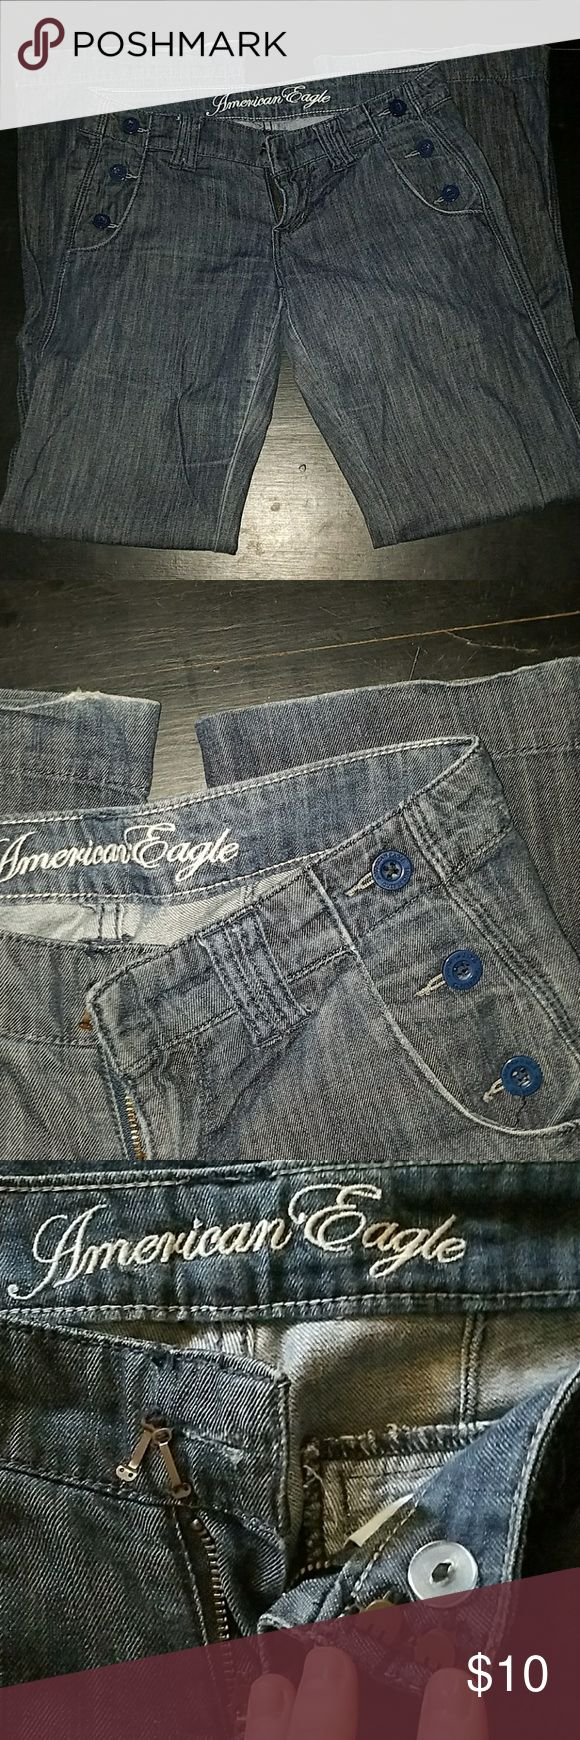 American Eagle trouser wide leg jeans Good worn condition, dark wash, light material, no stains or snags, no fading, slight wear on hem, one back pocket button missing and waist clasp loose. Love these! Dressy. 29 inseam Never machine dried. American Eagle Outfitters Jeans Flare & Wide Leg